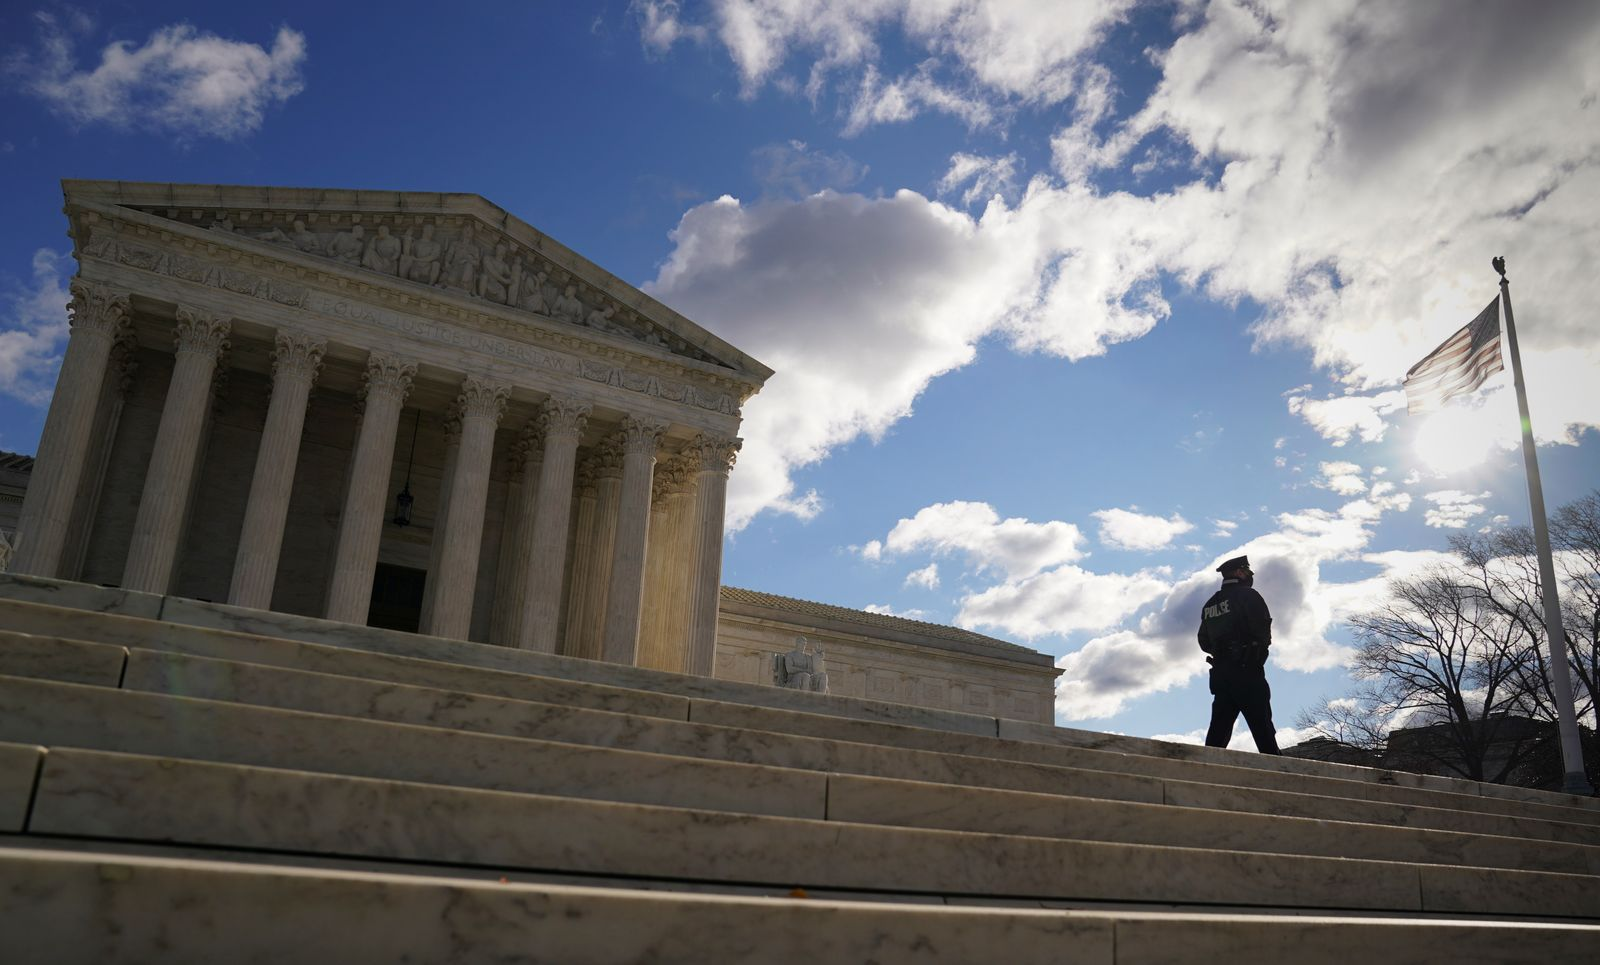 A police officer patrols in front of the U.S. Supreme Court in Washington